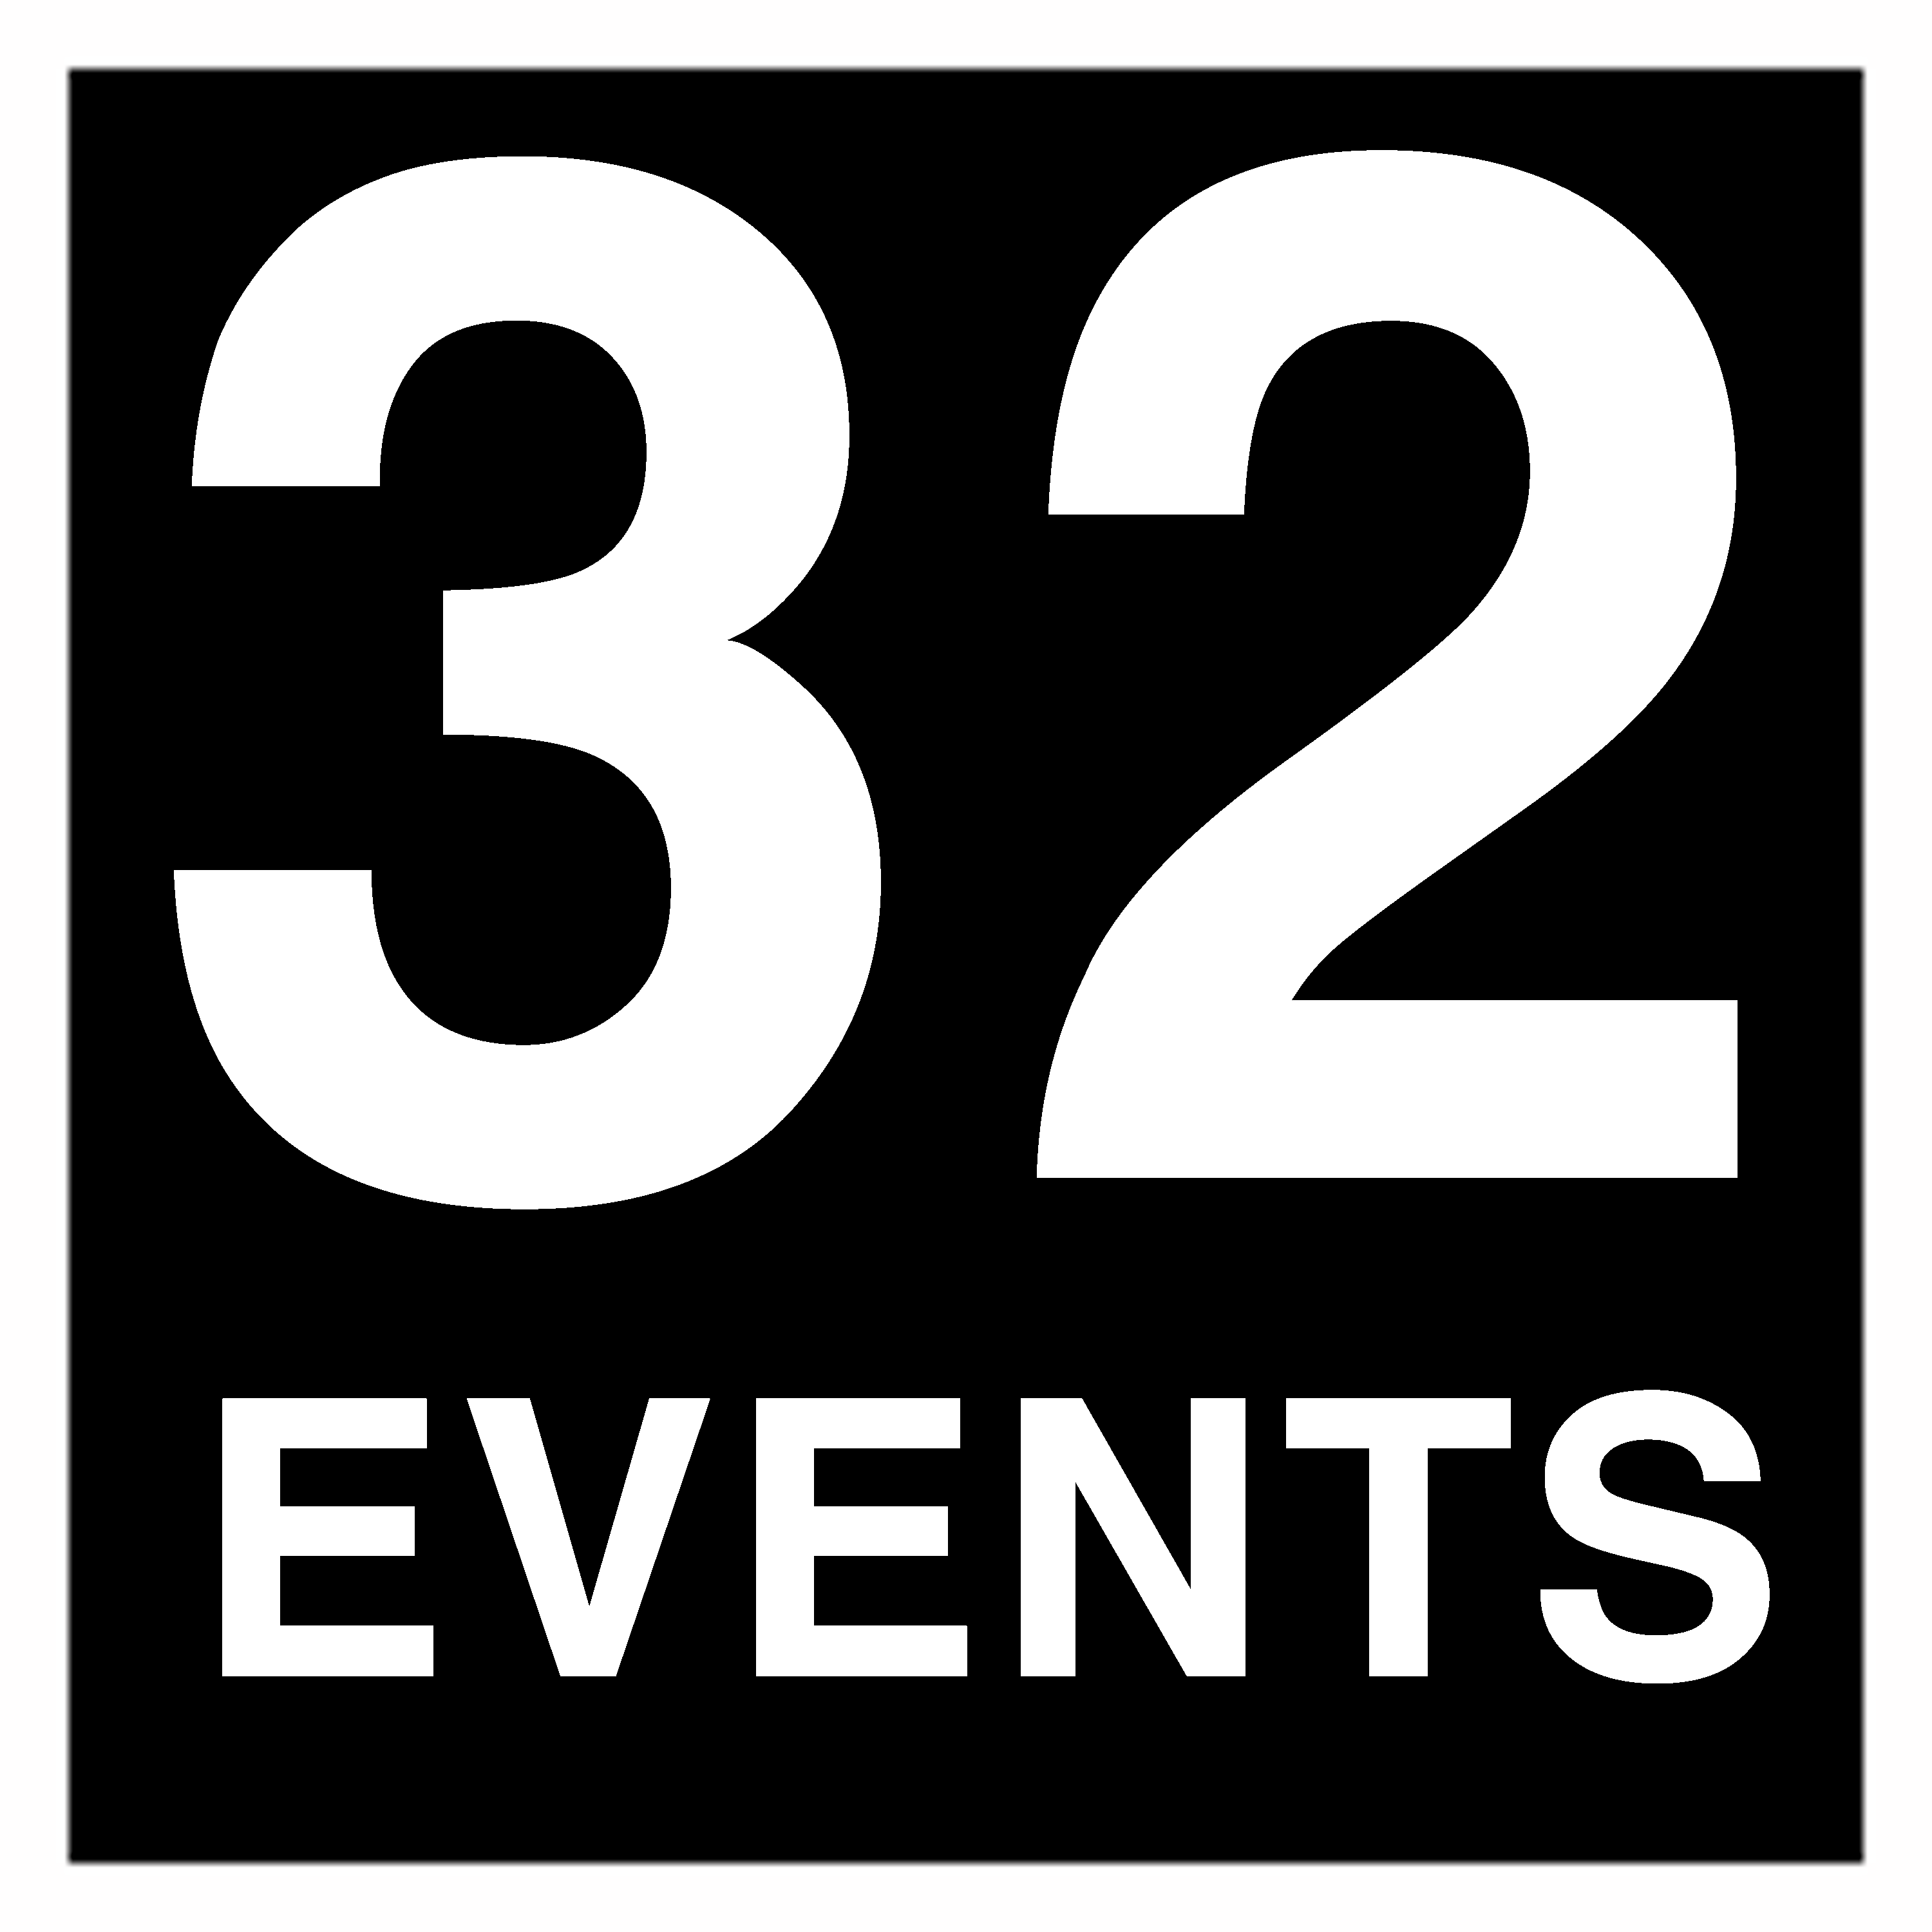 32 events logo high res.png